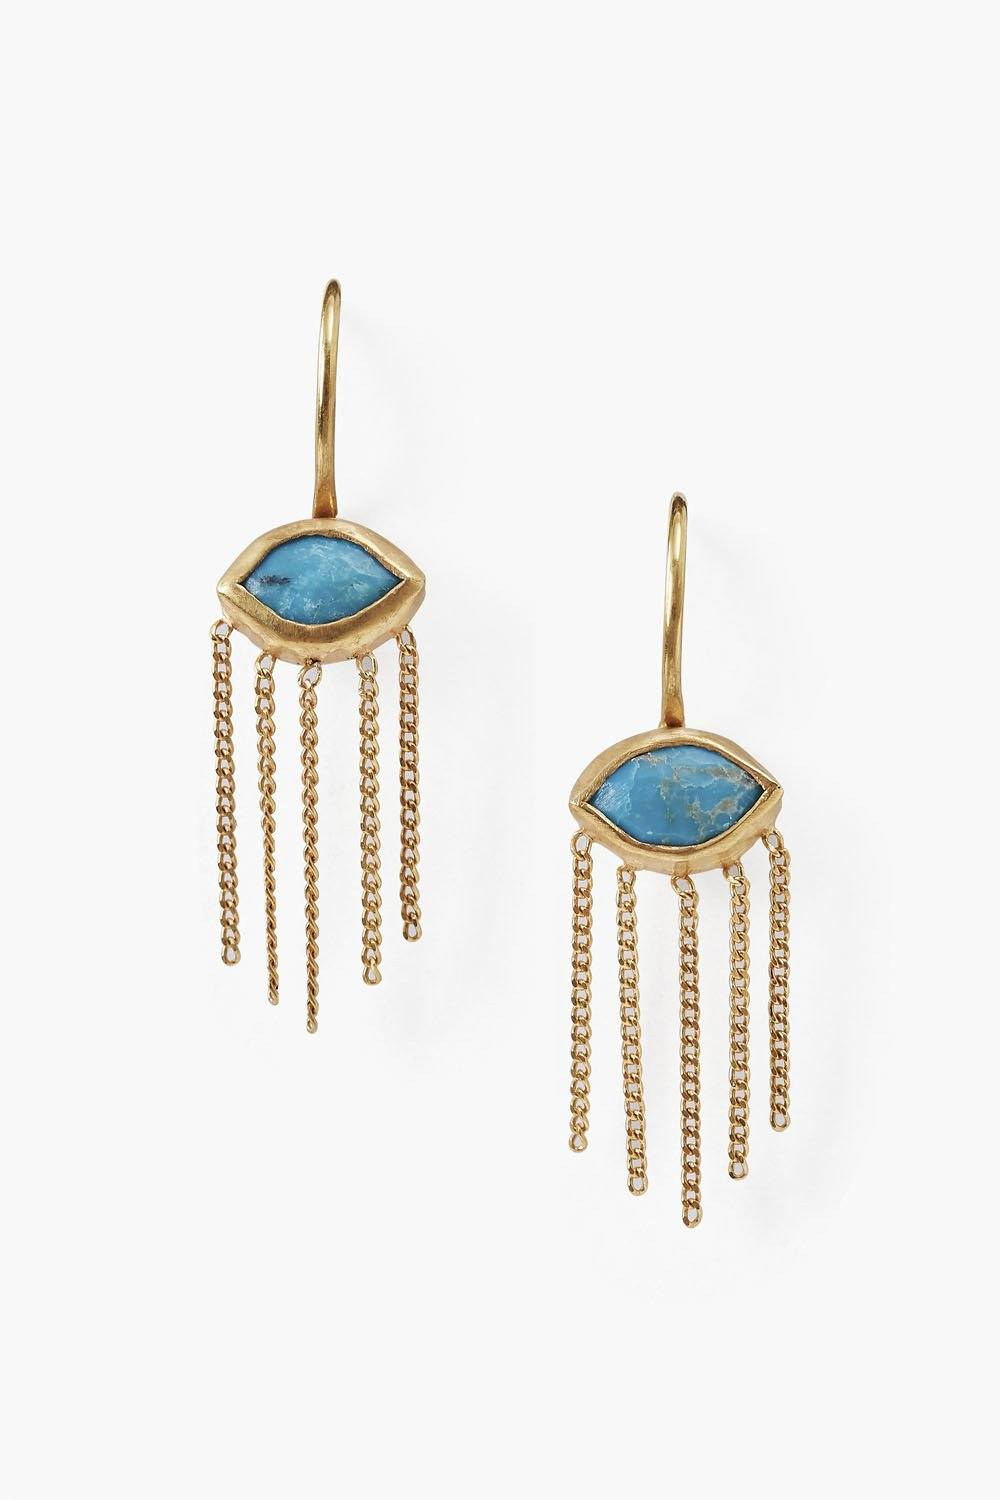 Petite Turquoise Crying Evil Eye Earrings